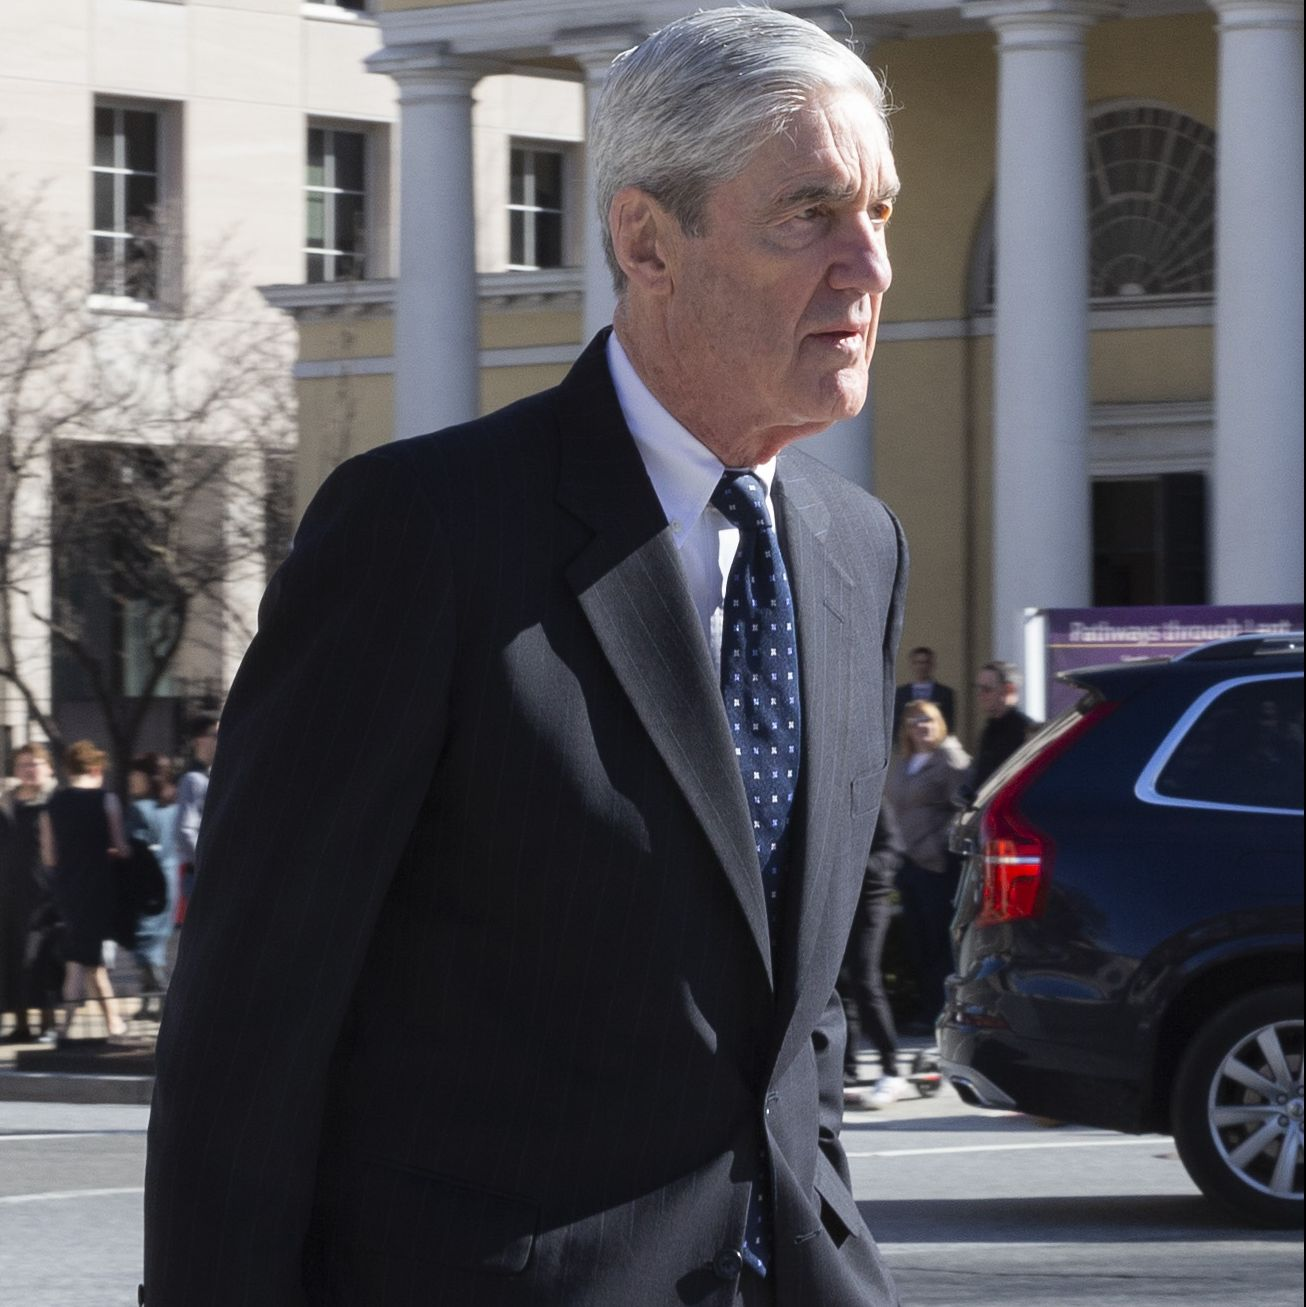 Mueller Found Trump Did Not Conspire With Russia, But Didn't Clear Him on Obstruction of Justice